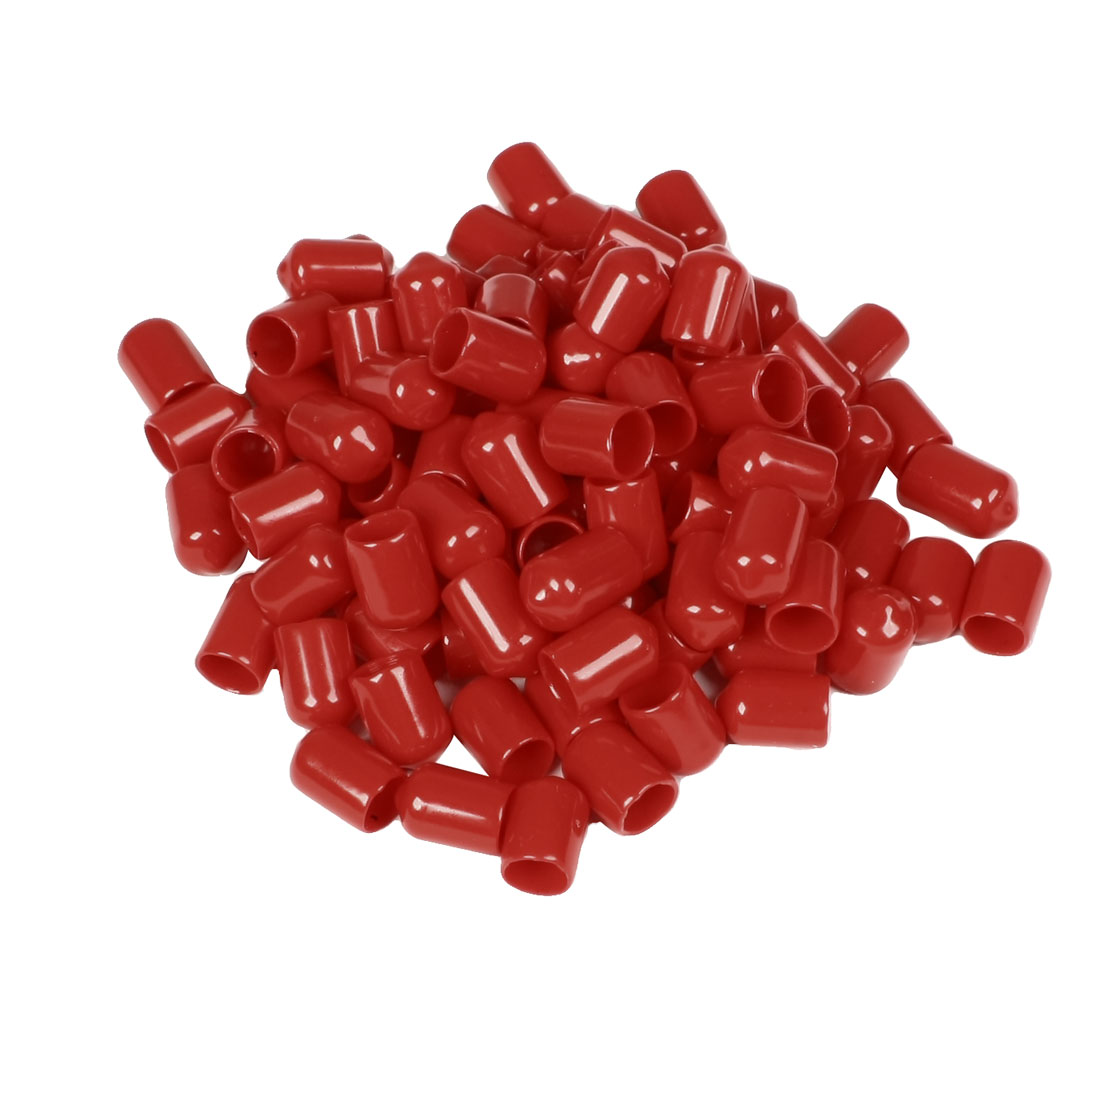 100 Pcs 17mm Height 10mm Inner Dia Round Tip Red PVC Insulated End Caps